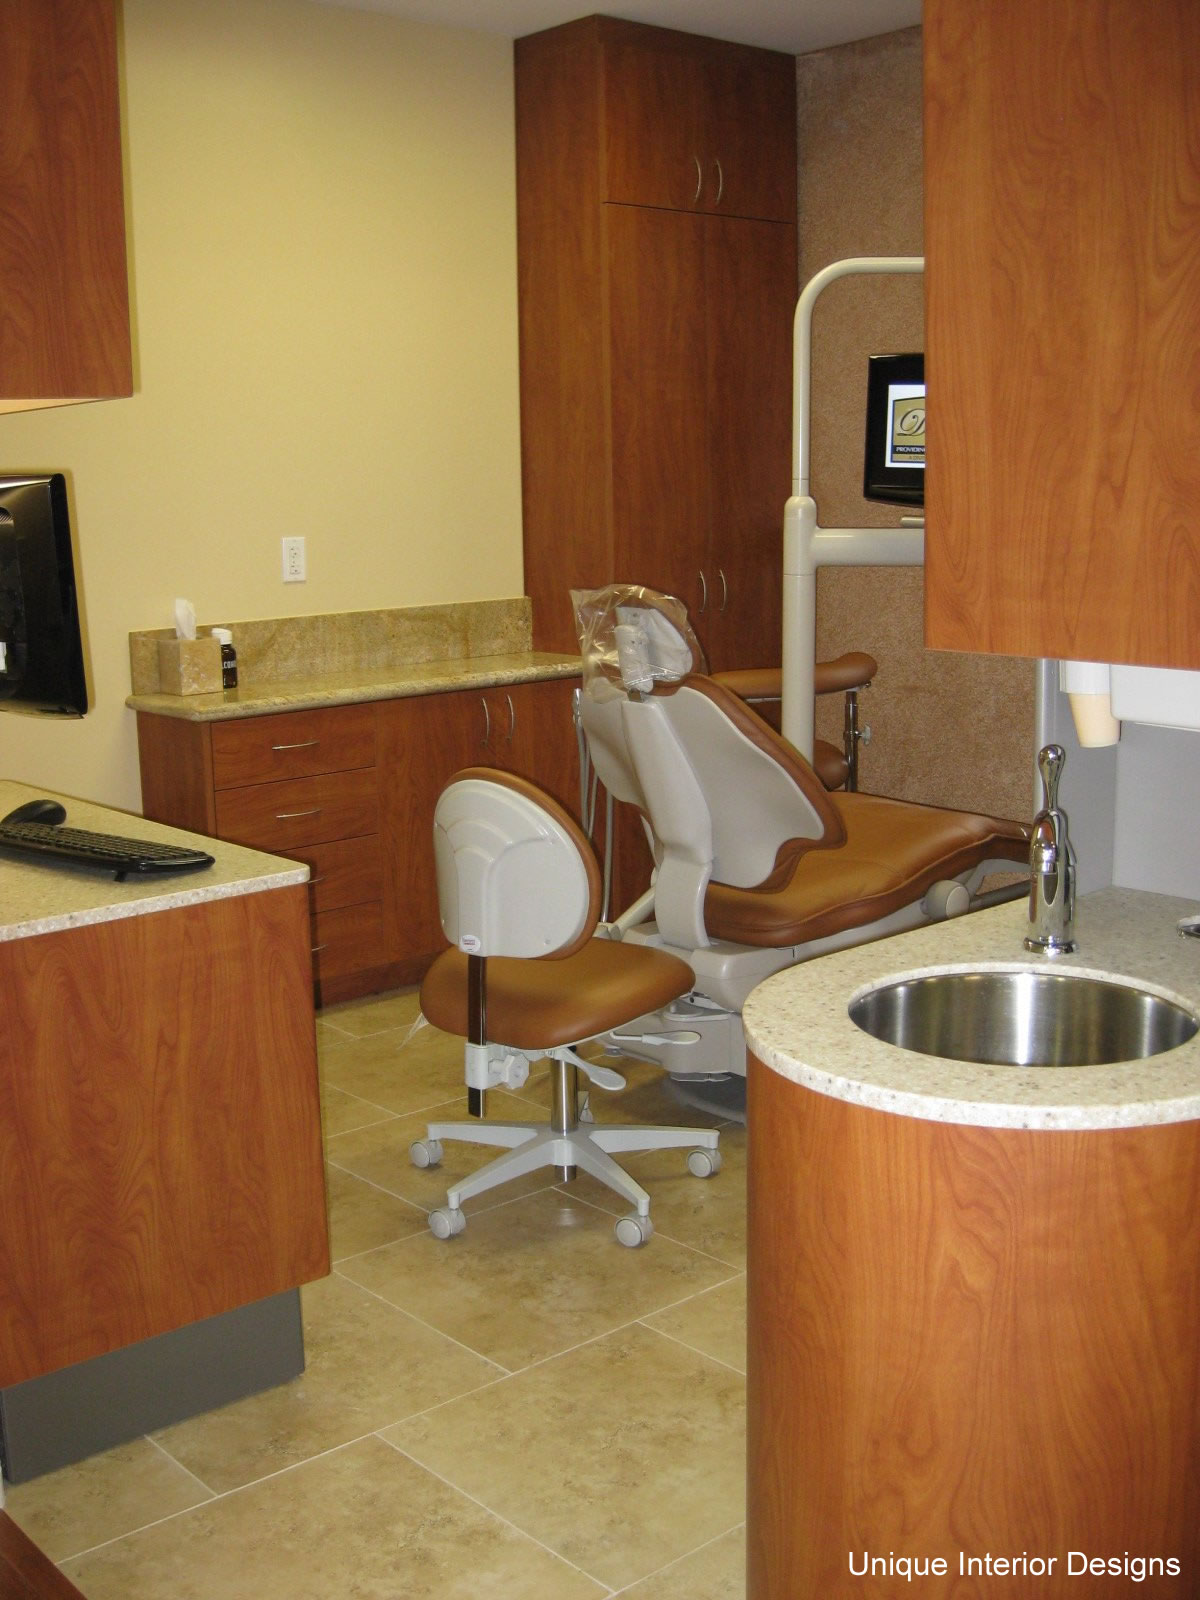 Dental Office Showcase 1 Unique Interior Designs Dental Office Design